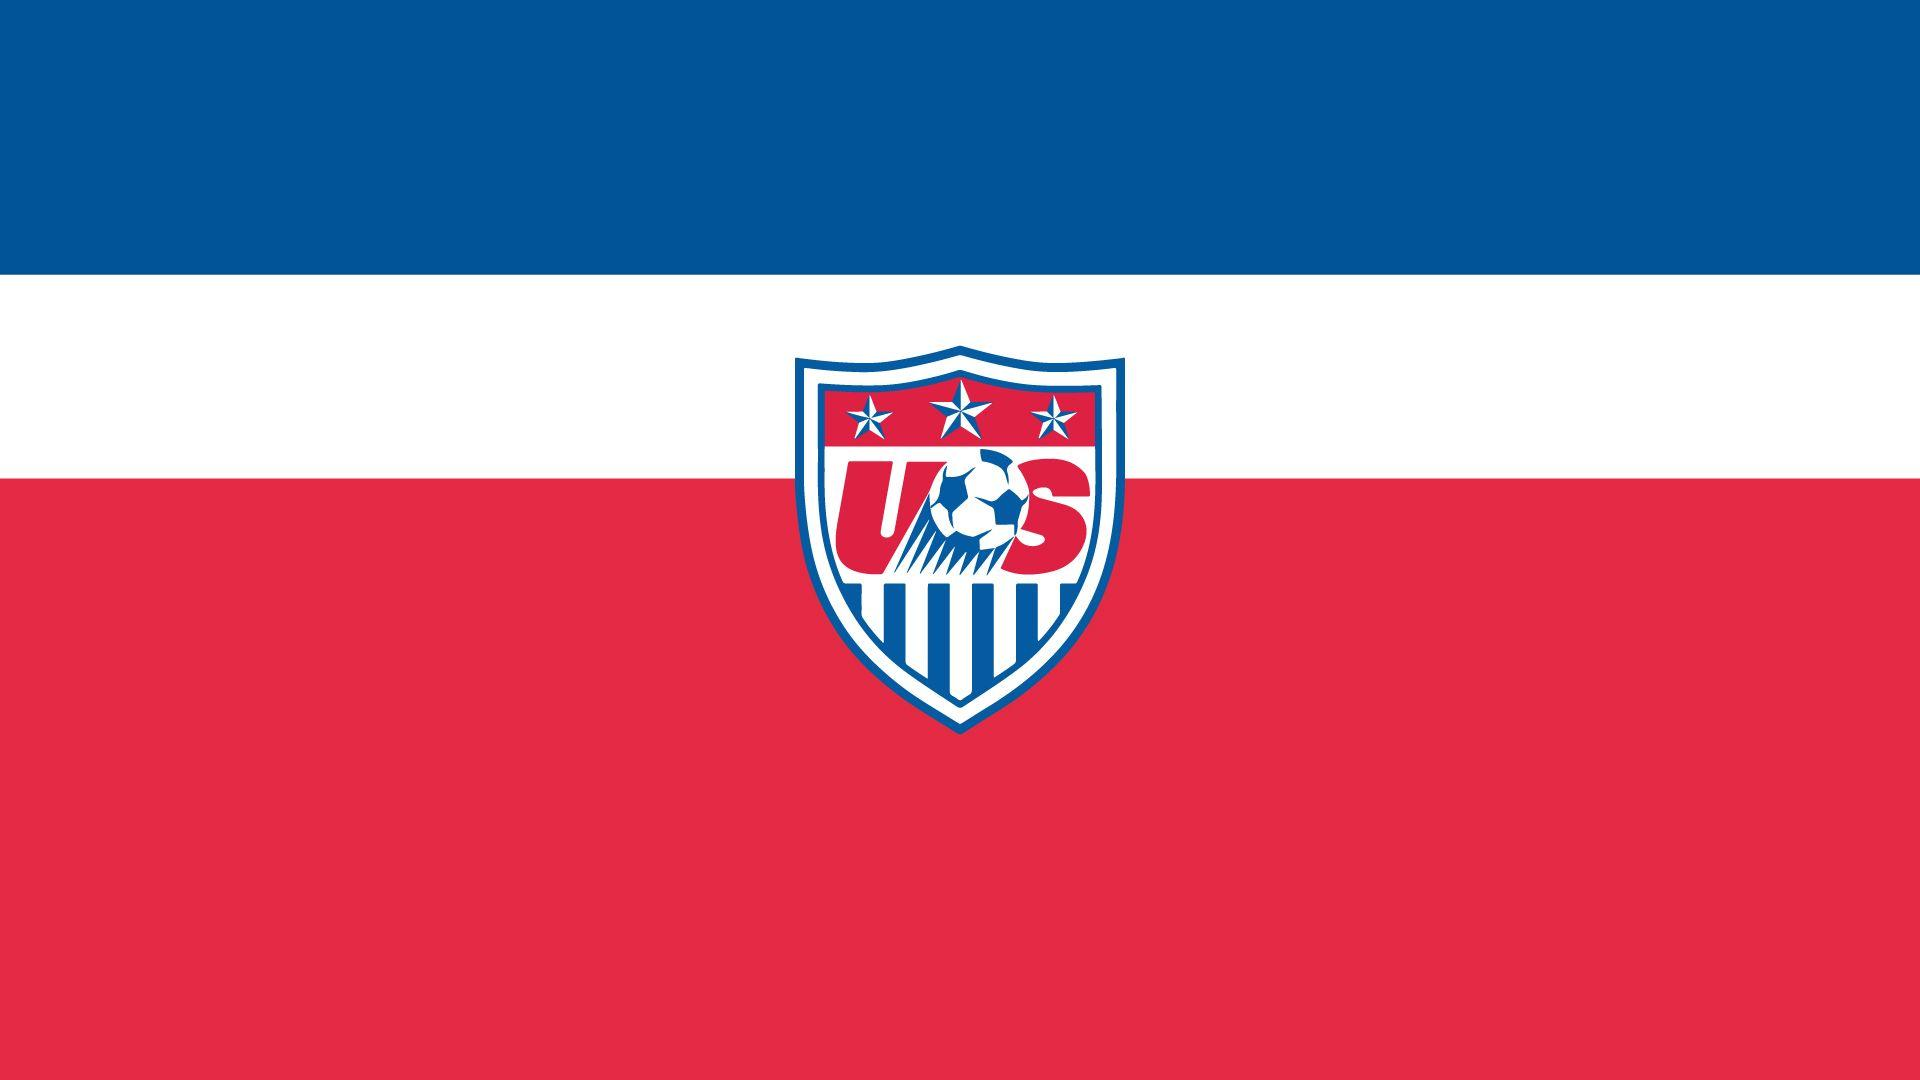 Usmnt Wallpapers 2015 - Wallpaper Cave Soccer Backgrounds For Iphone